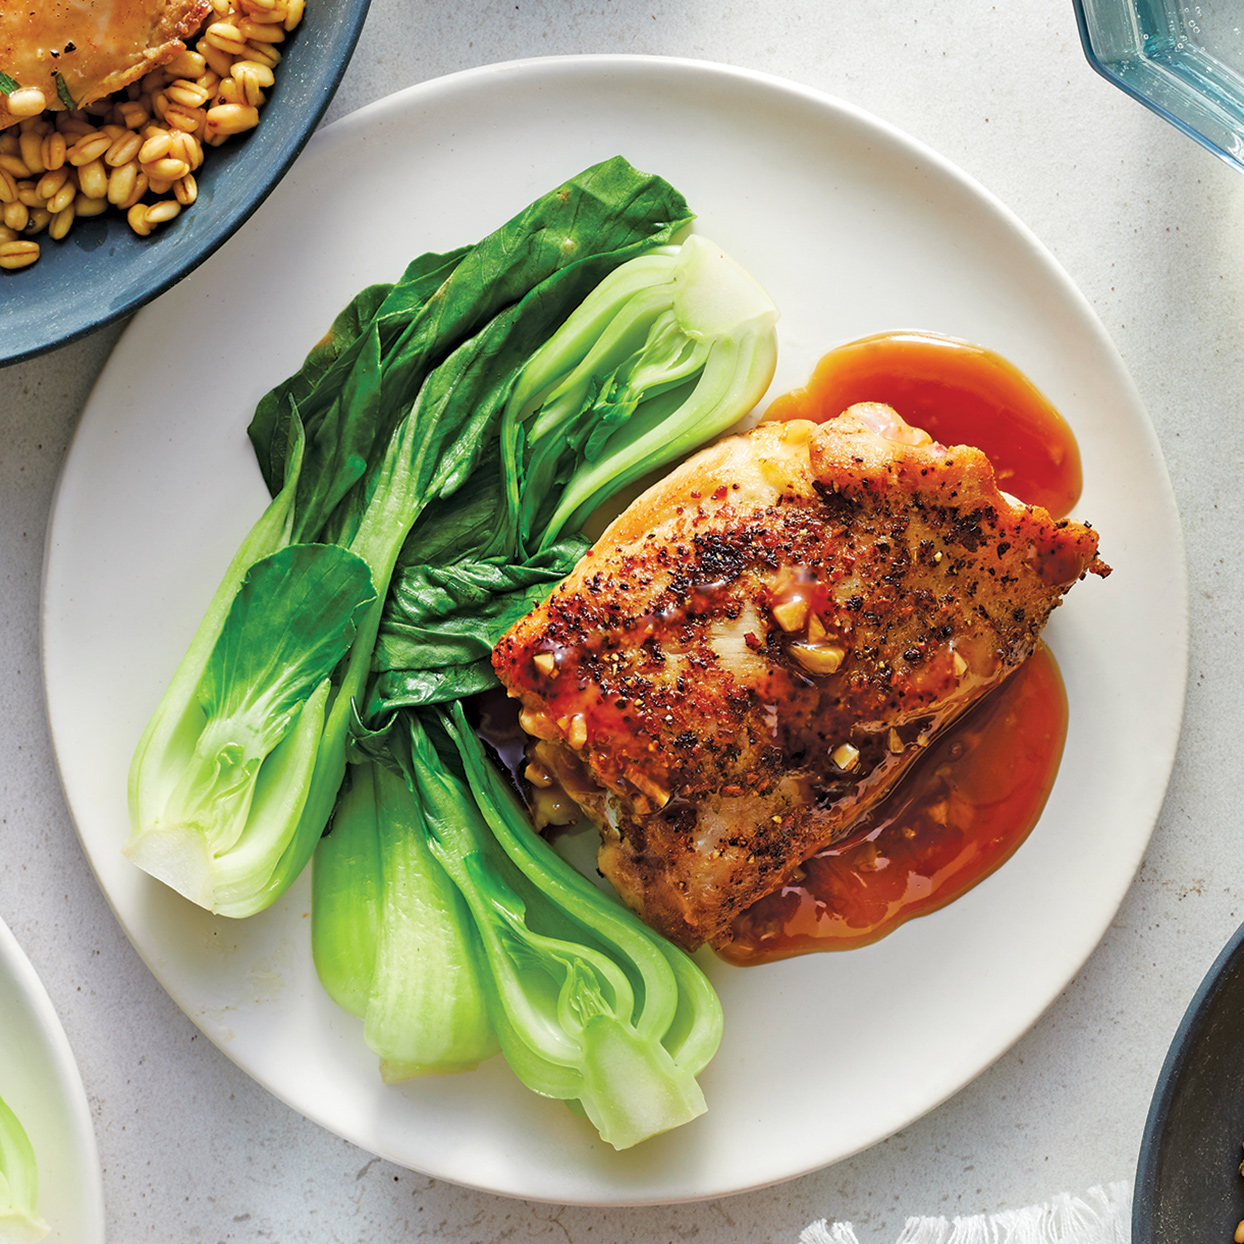 Use your multicooker to make a quick version of this Filipino dish that's traditionally marinated overnight. The sweet and spicy Instant Pot chicken is tender and juicy, while the bok choy keeps its flavor and crisp texture. Source: 400 Calorie Recipes